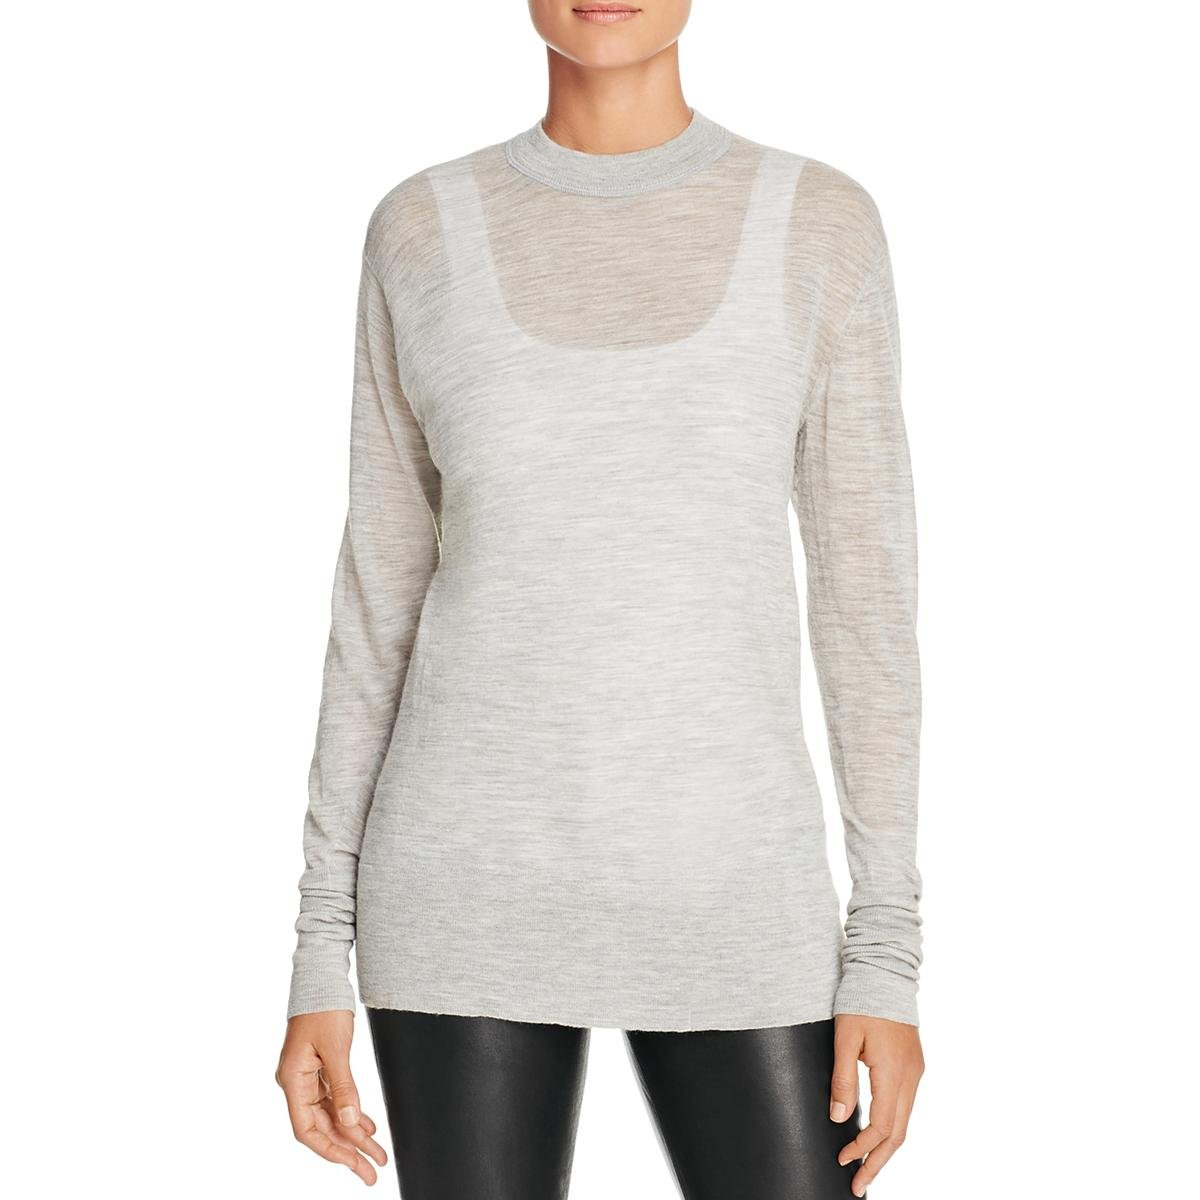 Pure DKNY Womens Long Heathered Pullover Top Gray P